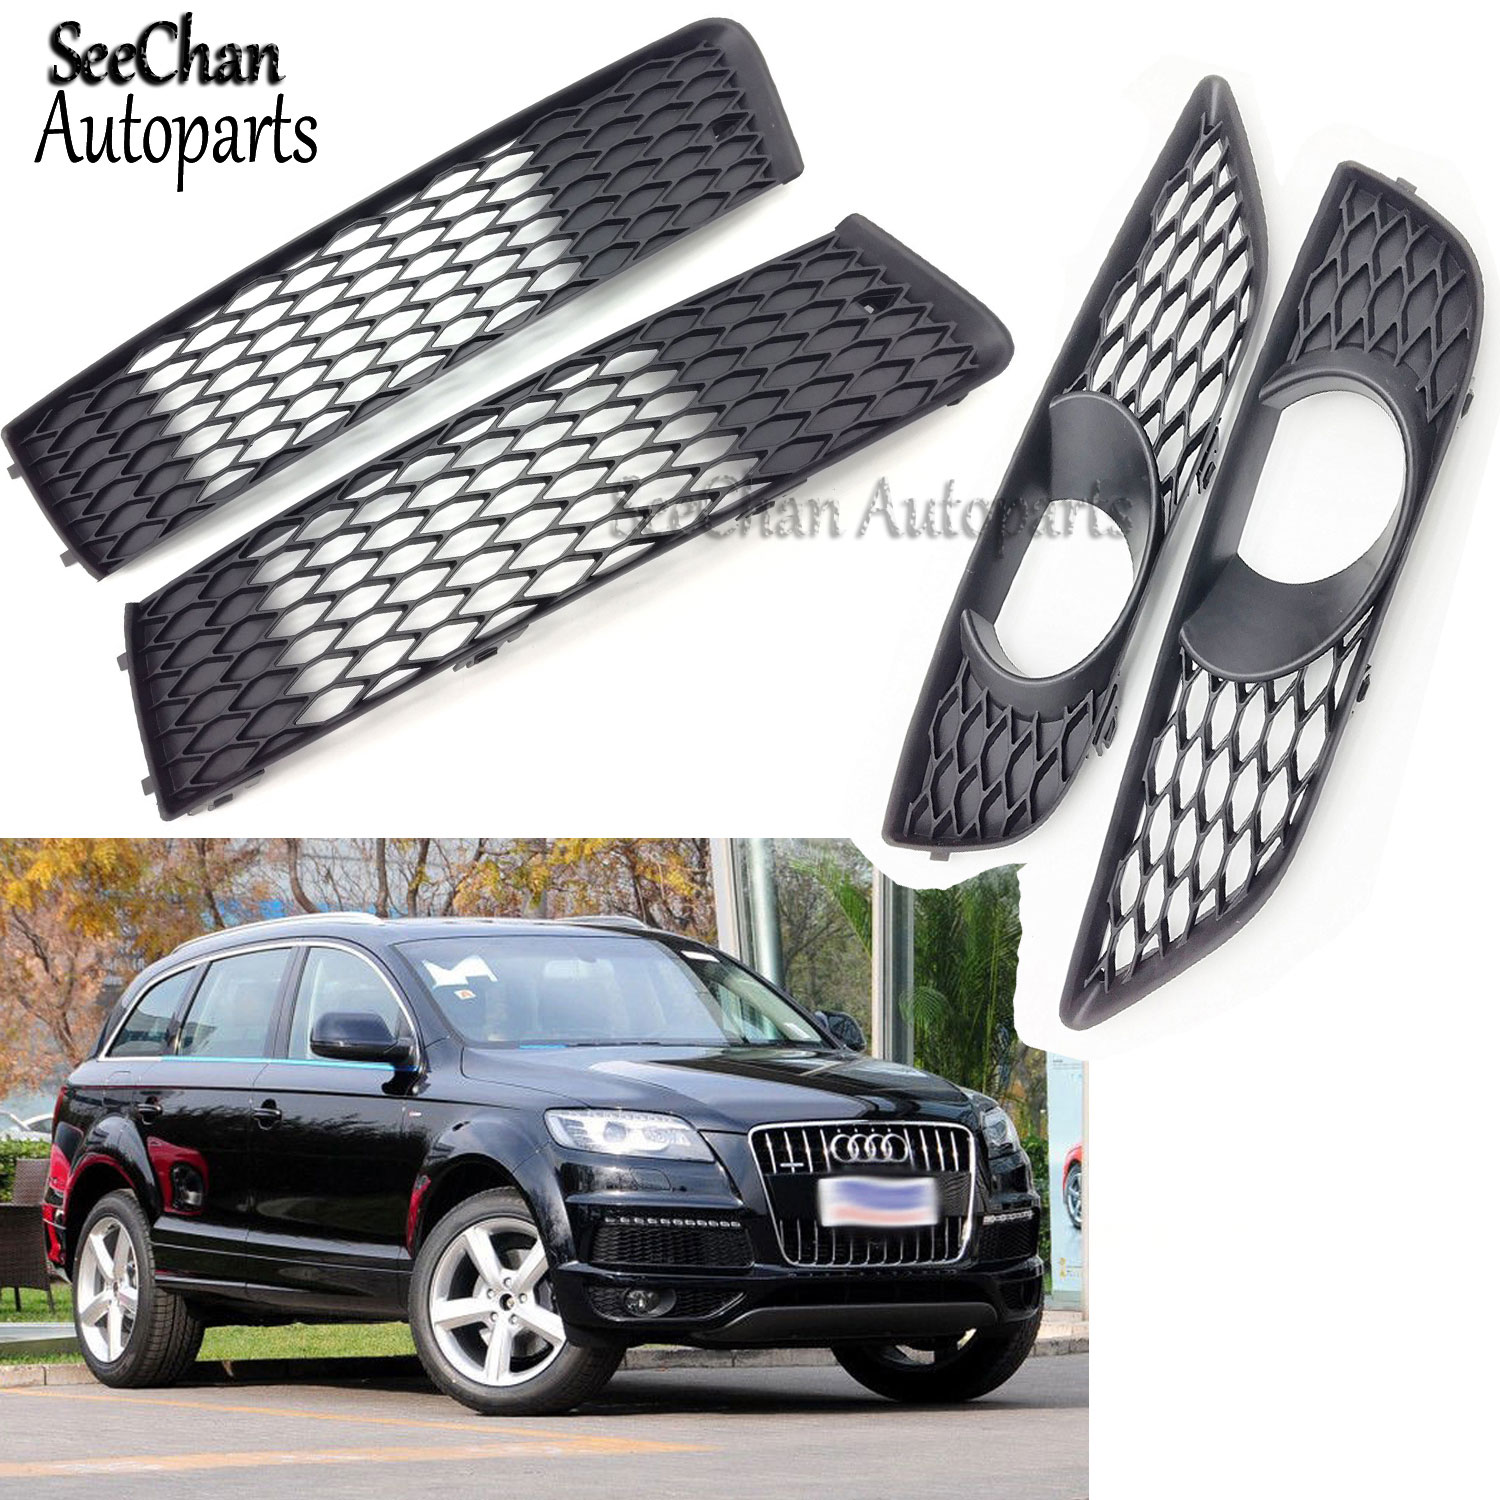 Fit For Audi Q7 2010-2015 Front Bumper Lower Grilles Fog